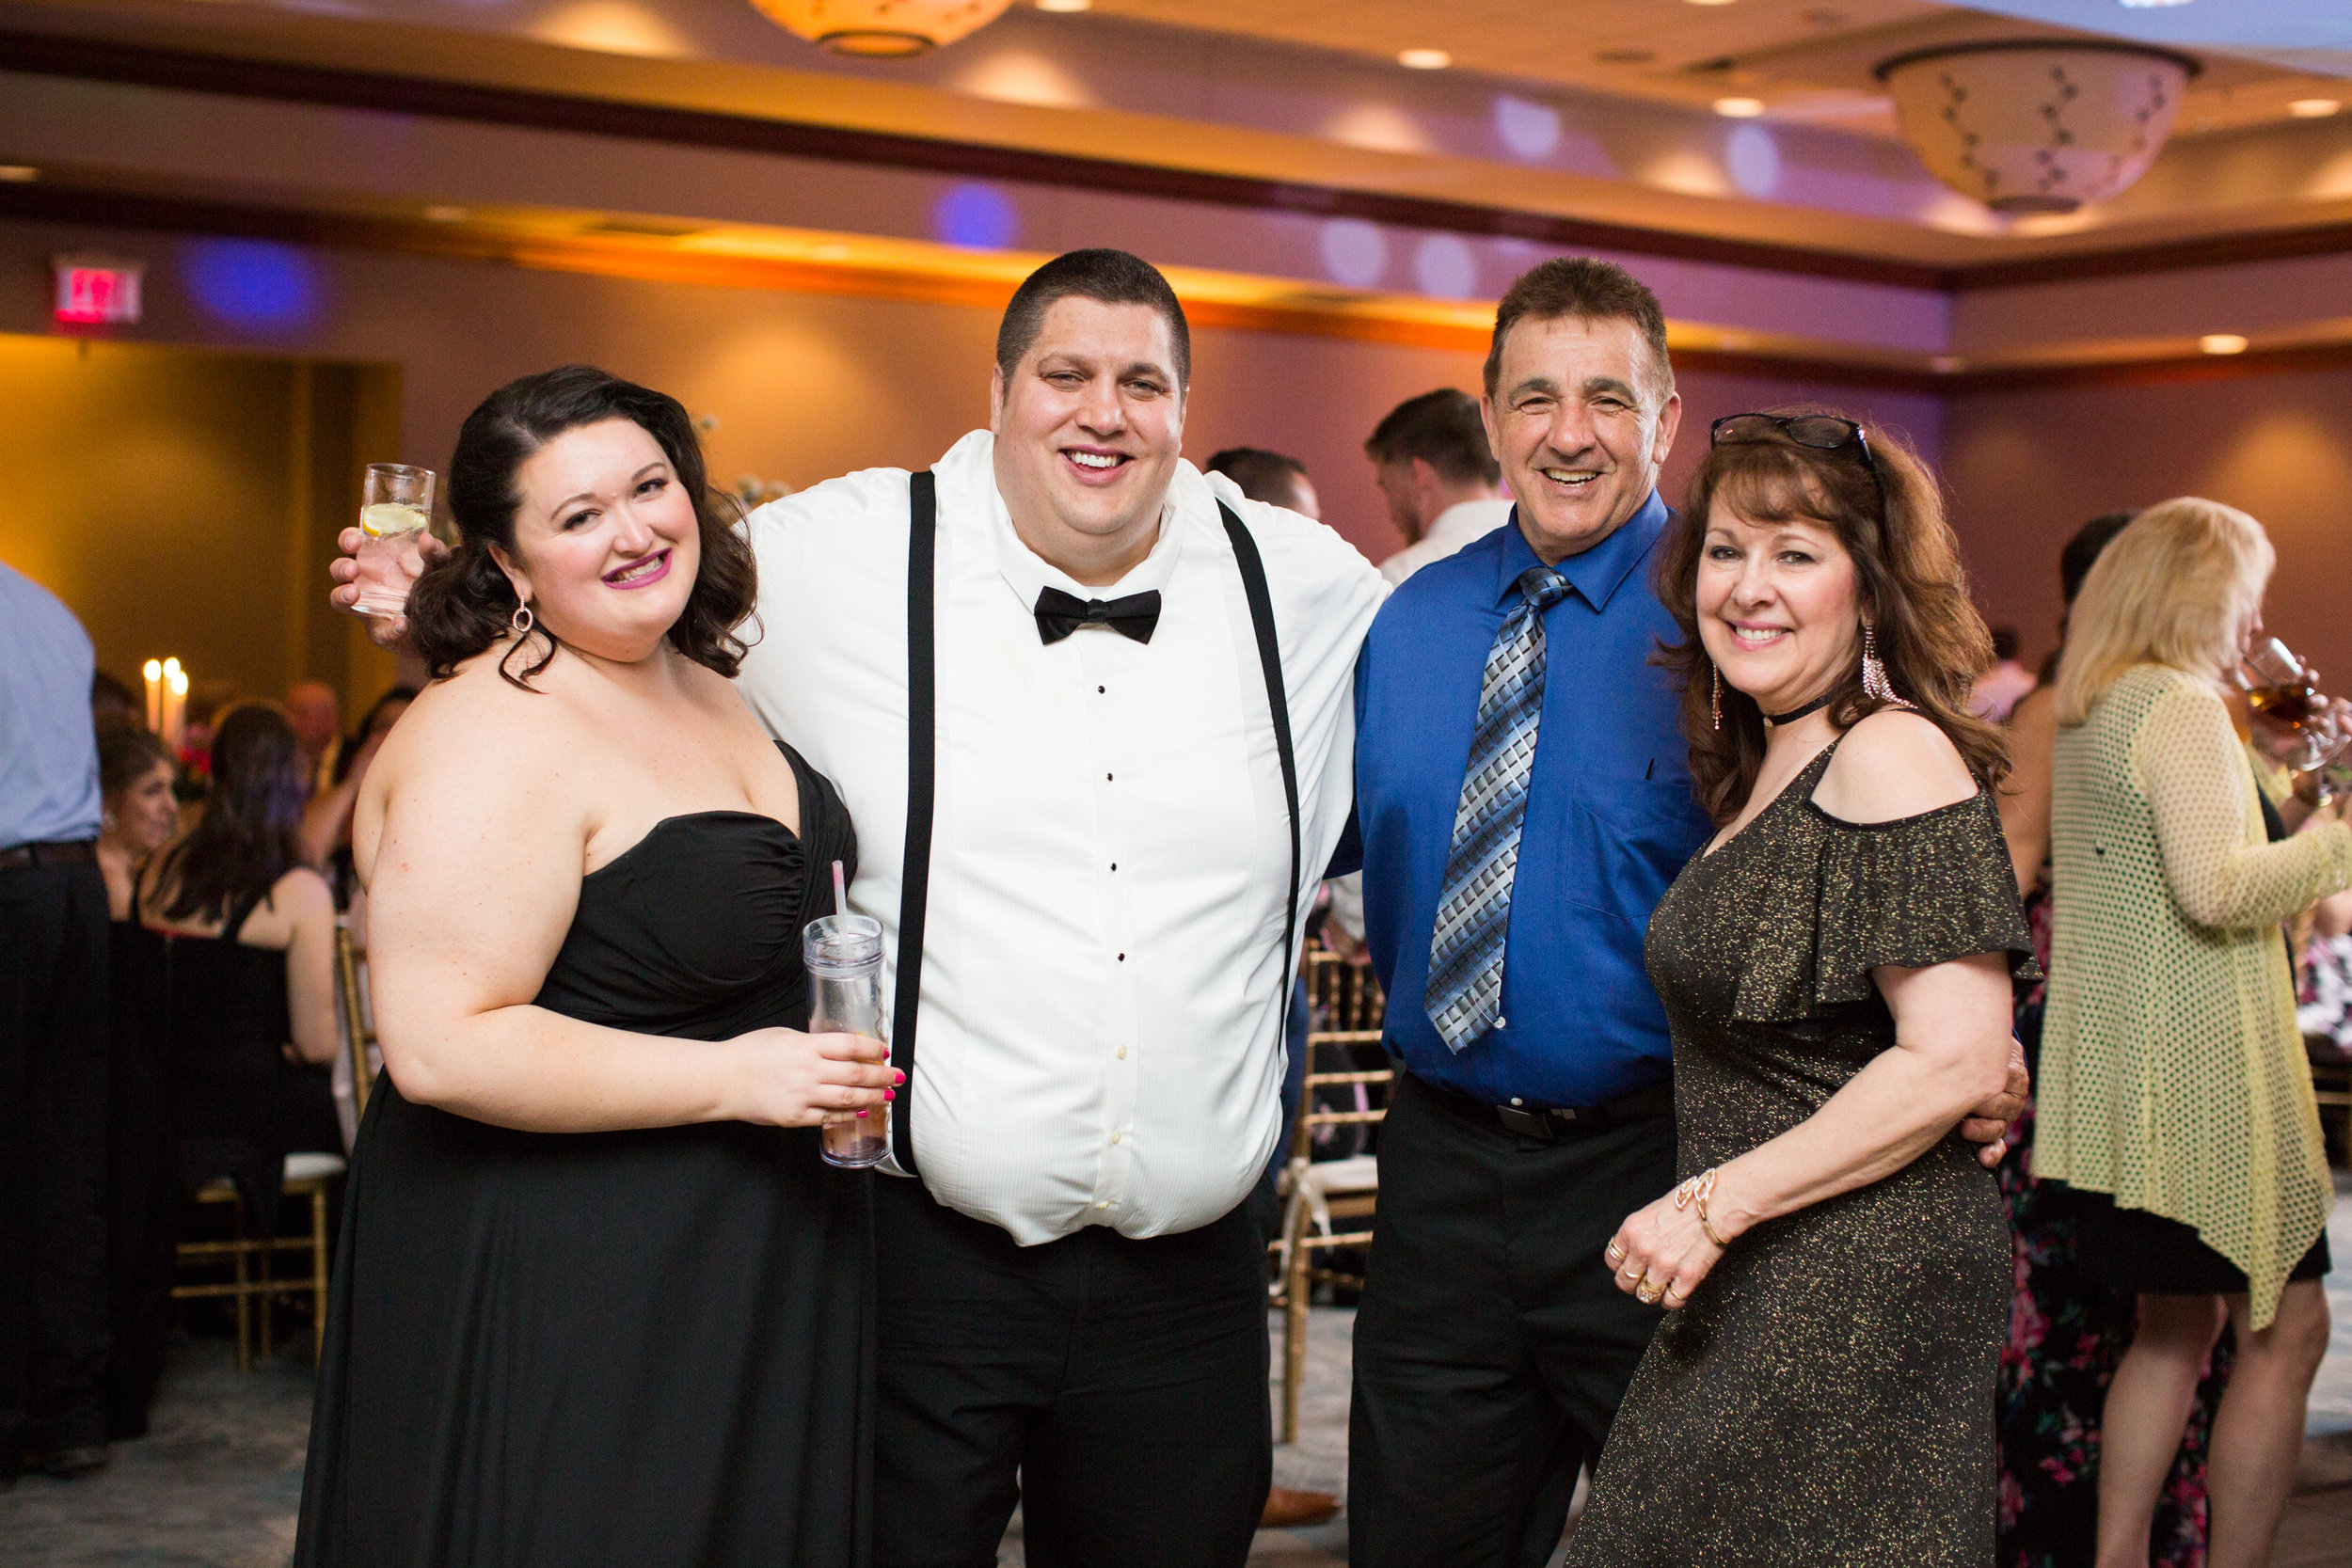 Hilton Scranton PA Wedding Photos_JDP-146.jpg